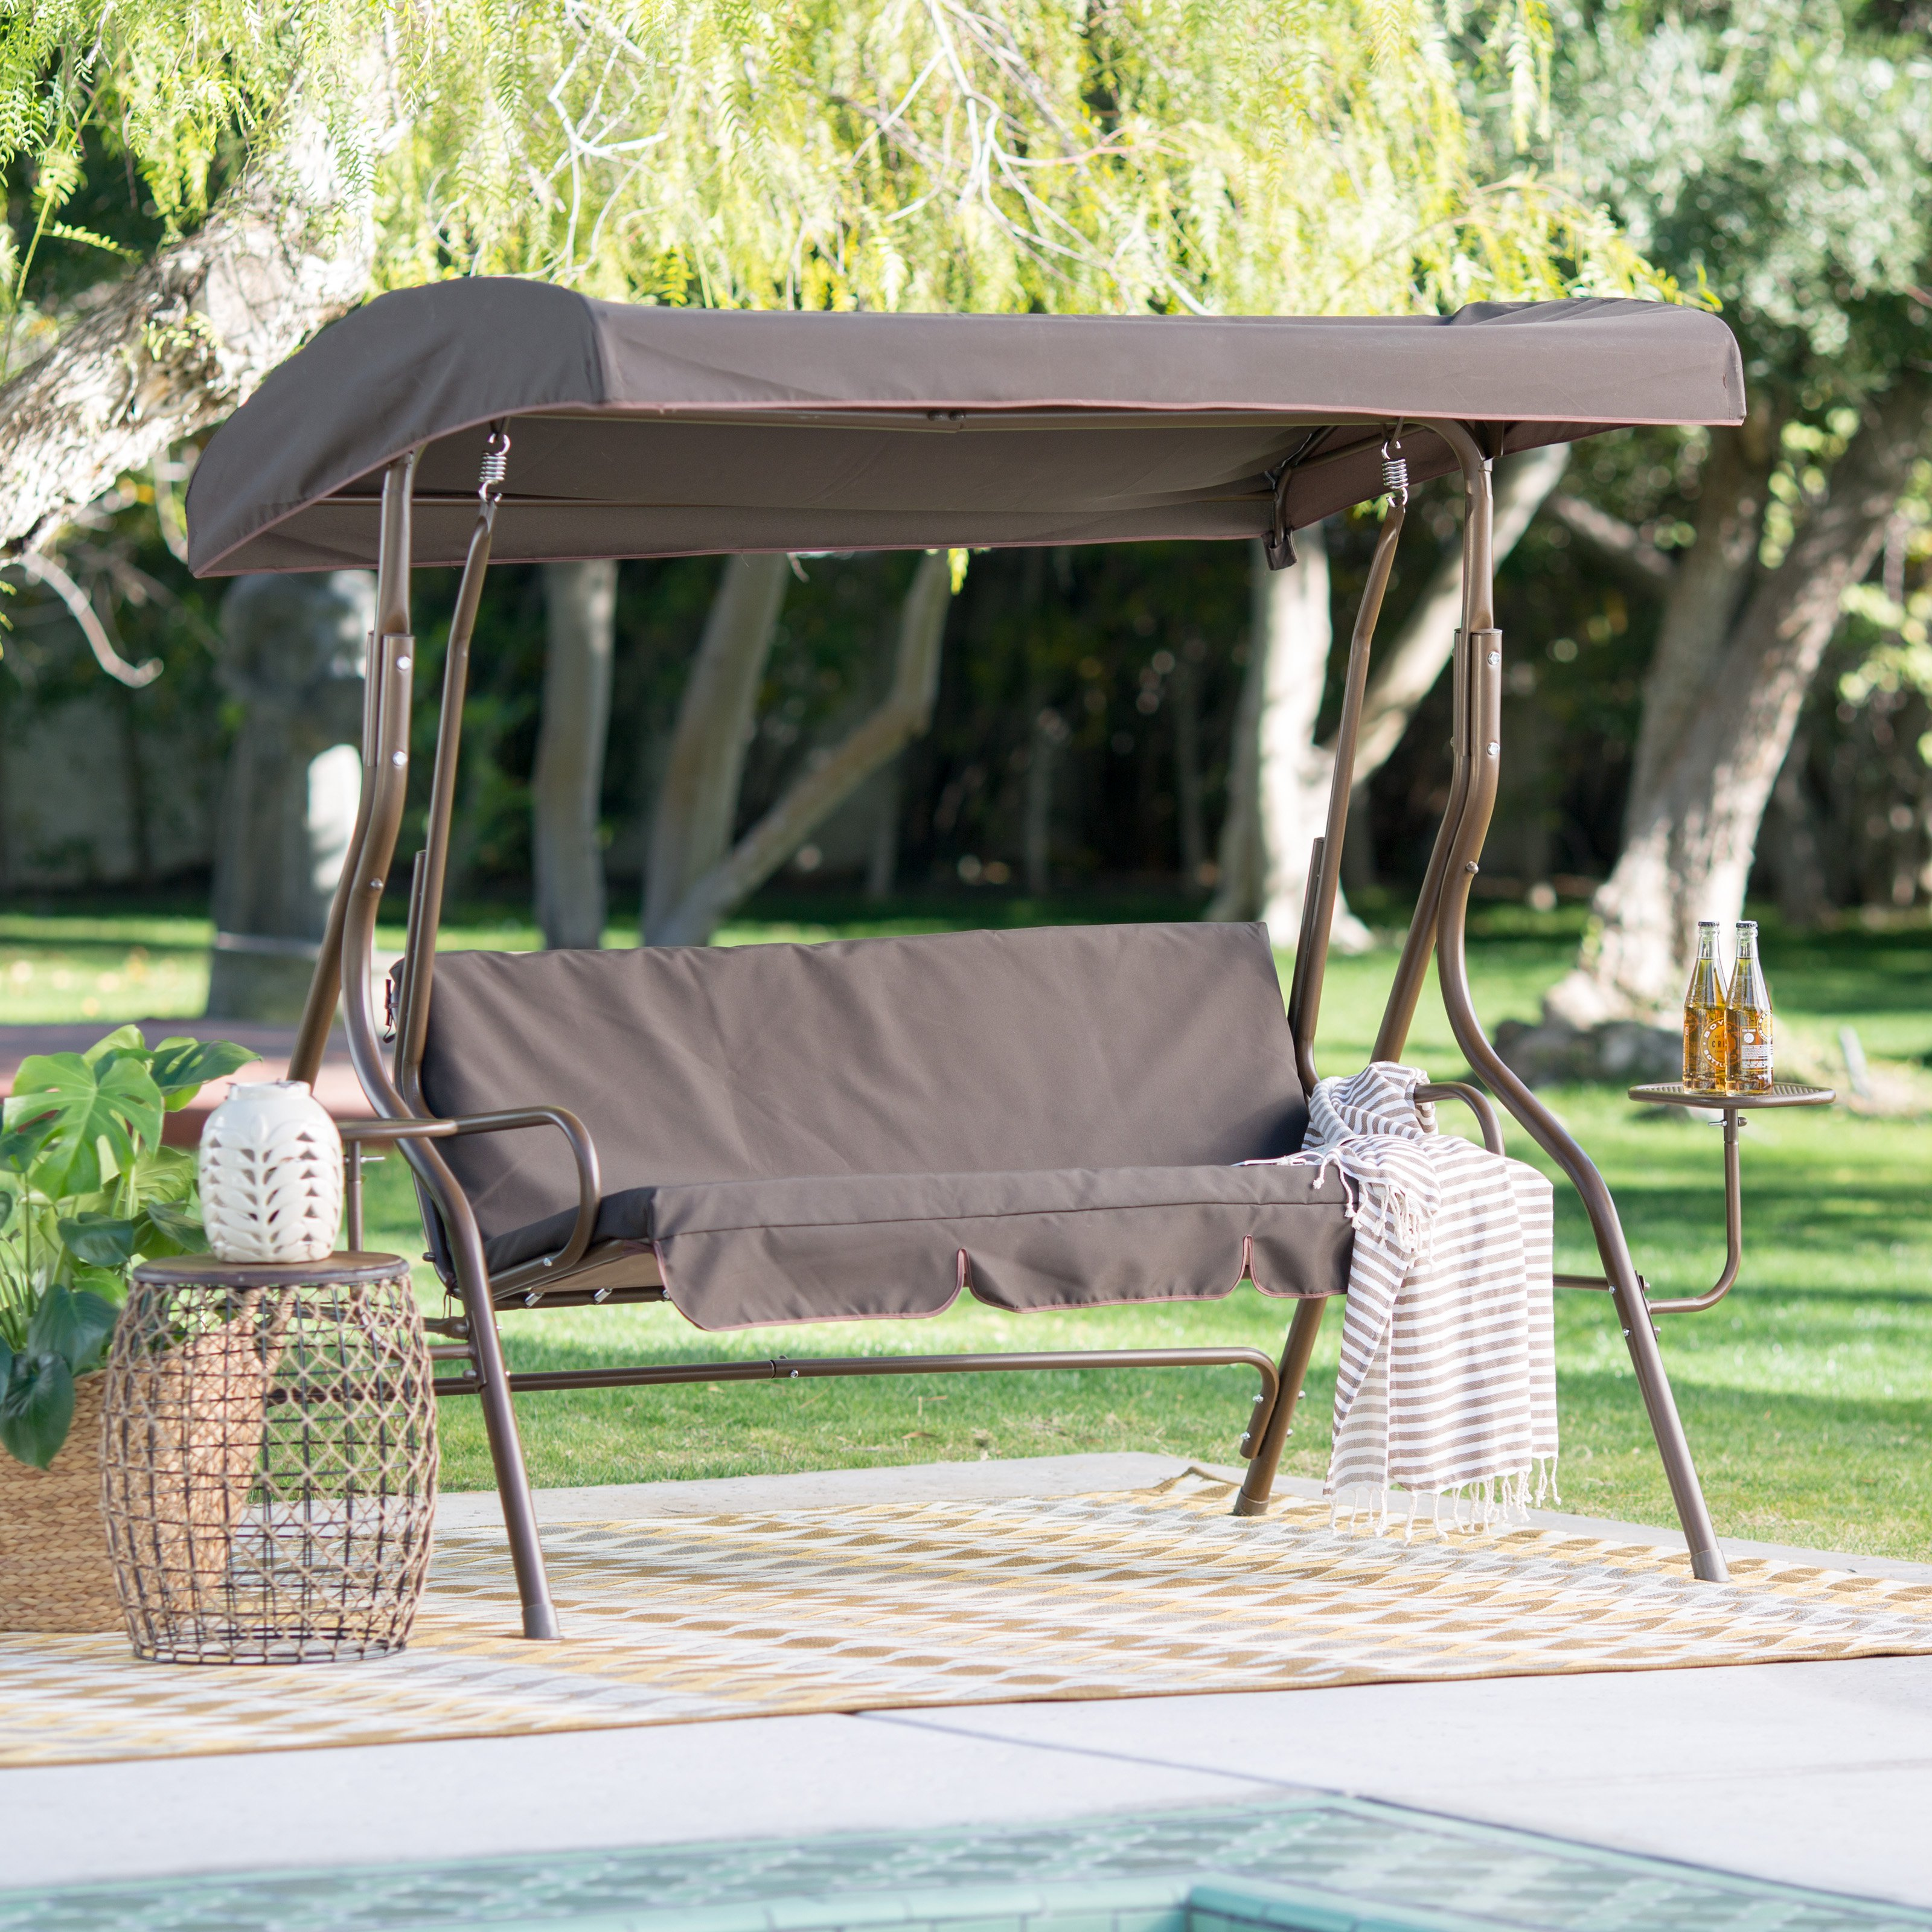 mainstays forest hills person porch swing frame set with canopy master patio center console table cover canadian tire quality rattan chair large sliding doors brown wicker outdoor